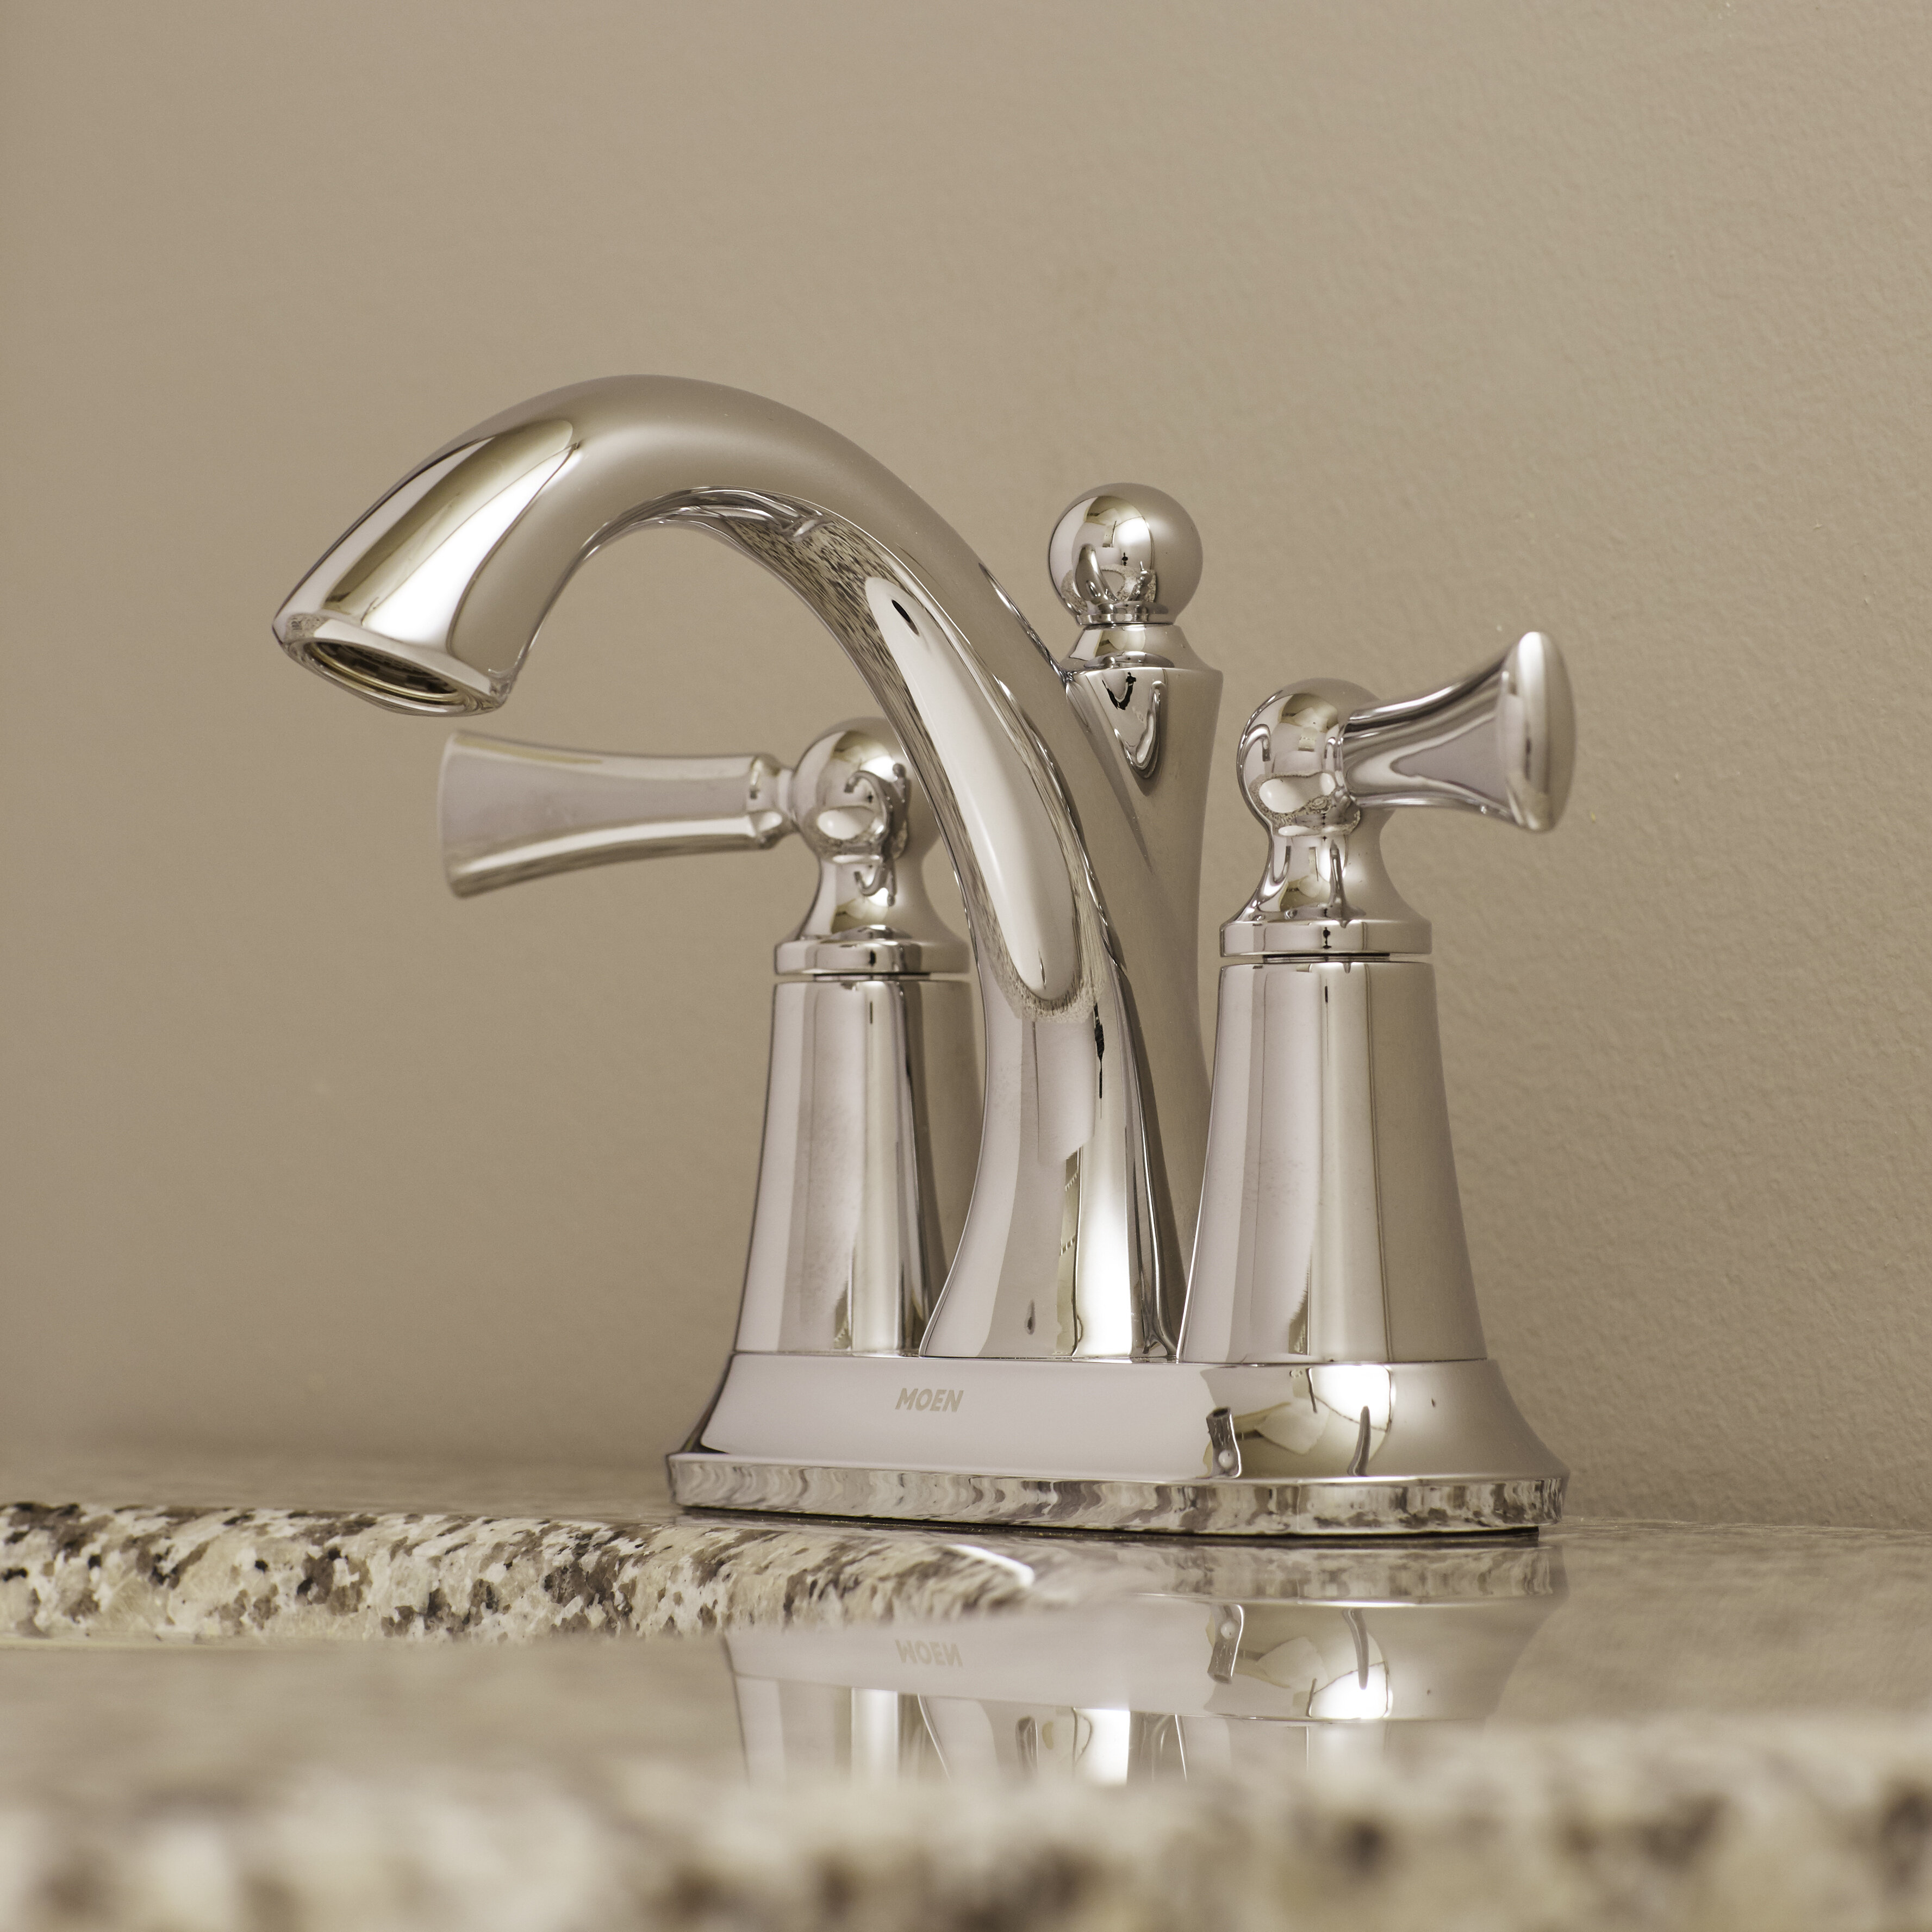 drain sink lowes faucet in shop shower heads centerset faucets com included watersense pl moen at oxby bathroom handle